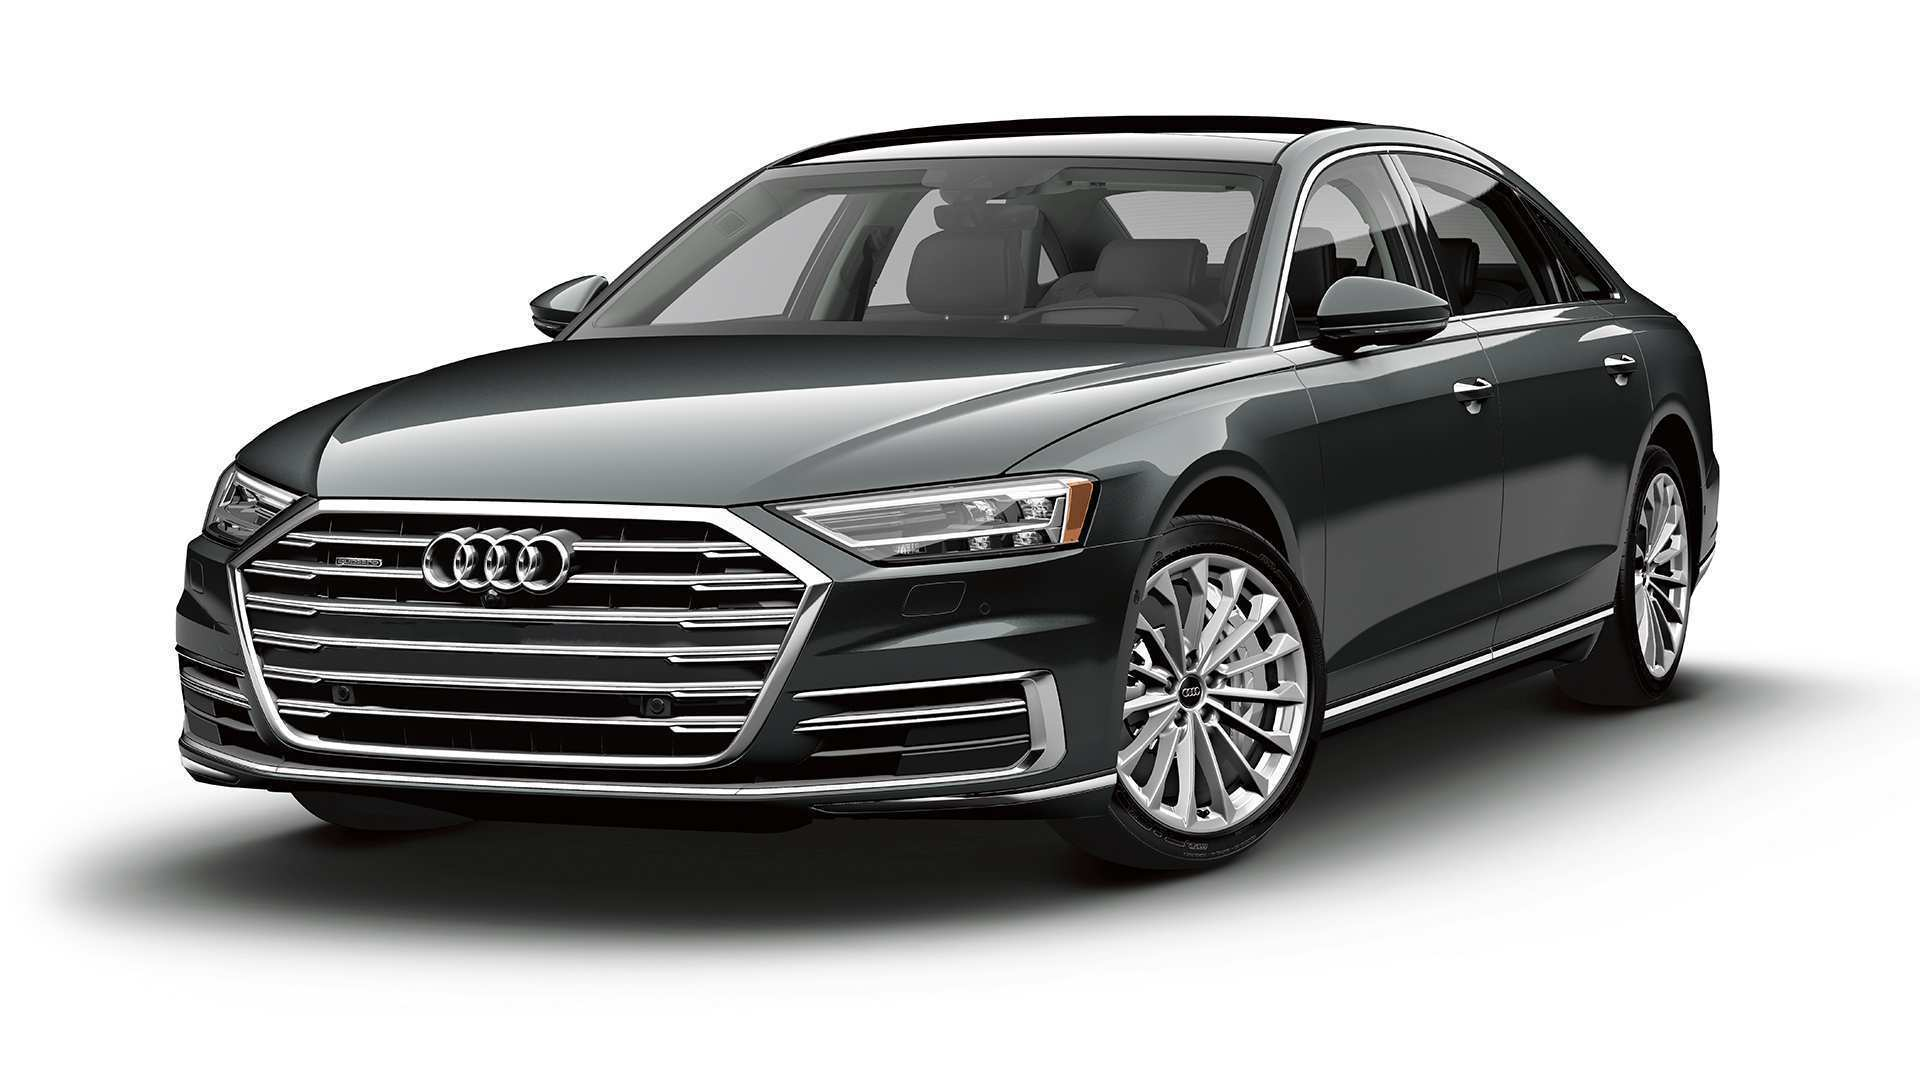 61 The 2019 Audi A8 L In Usa Price And Release Date